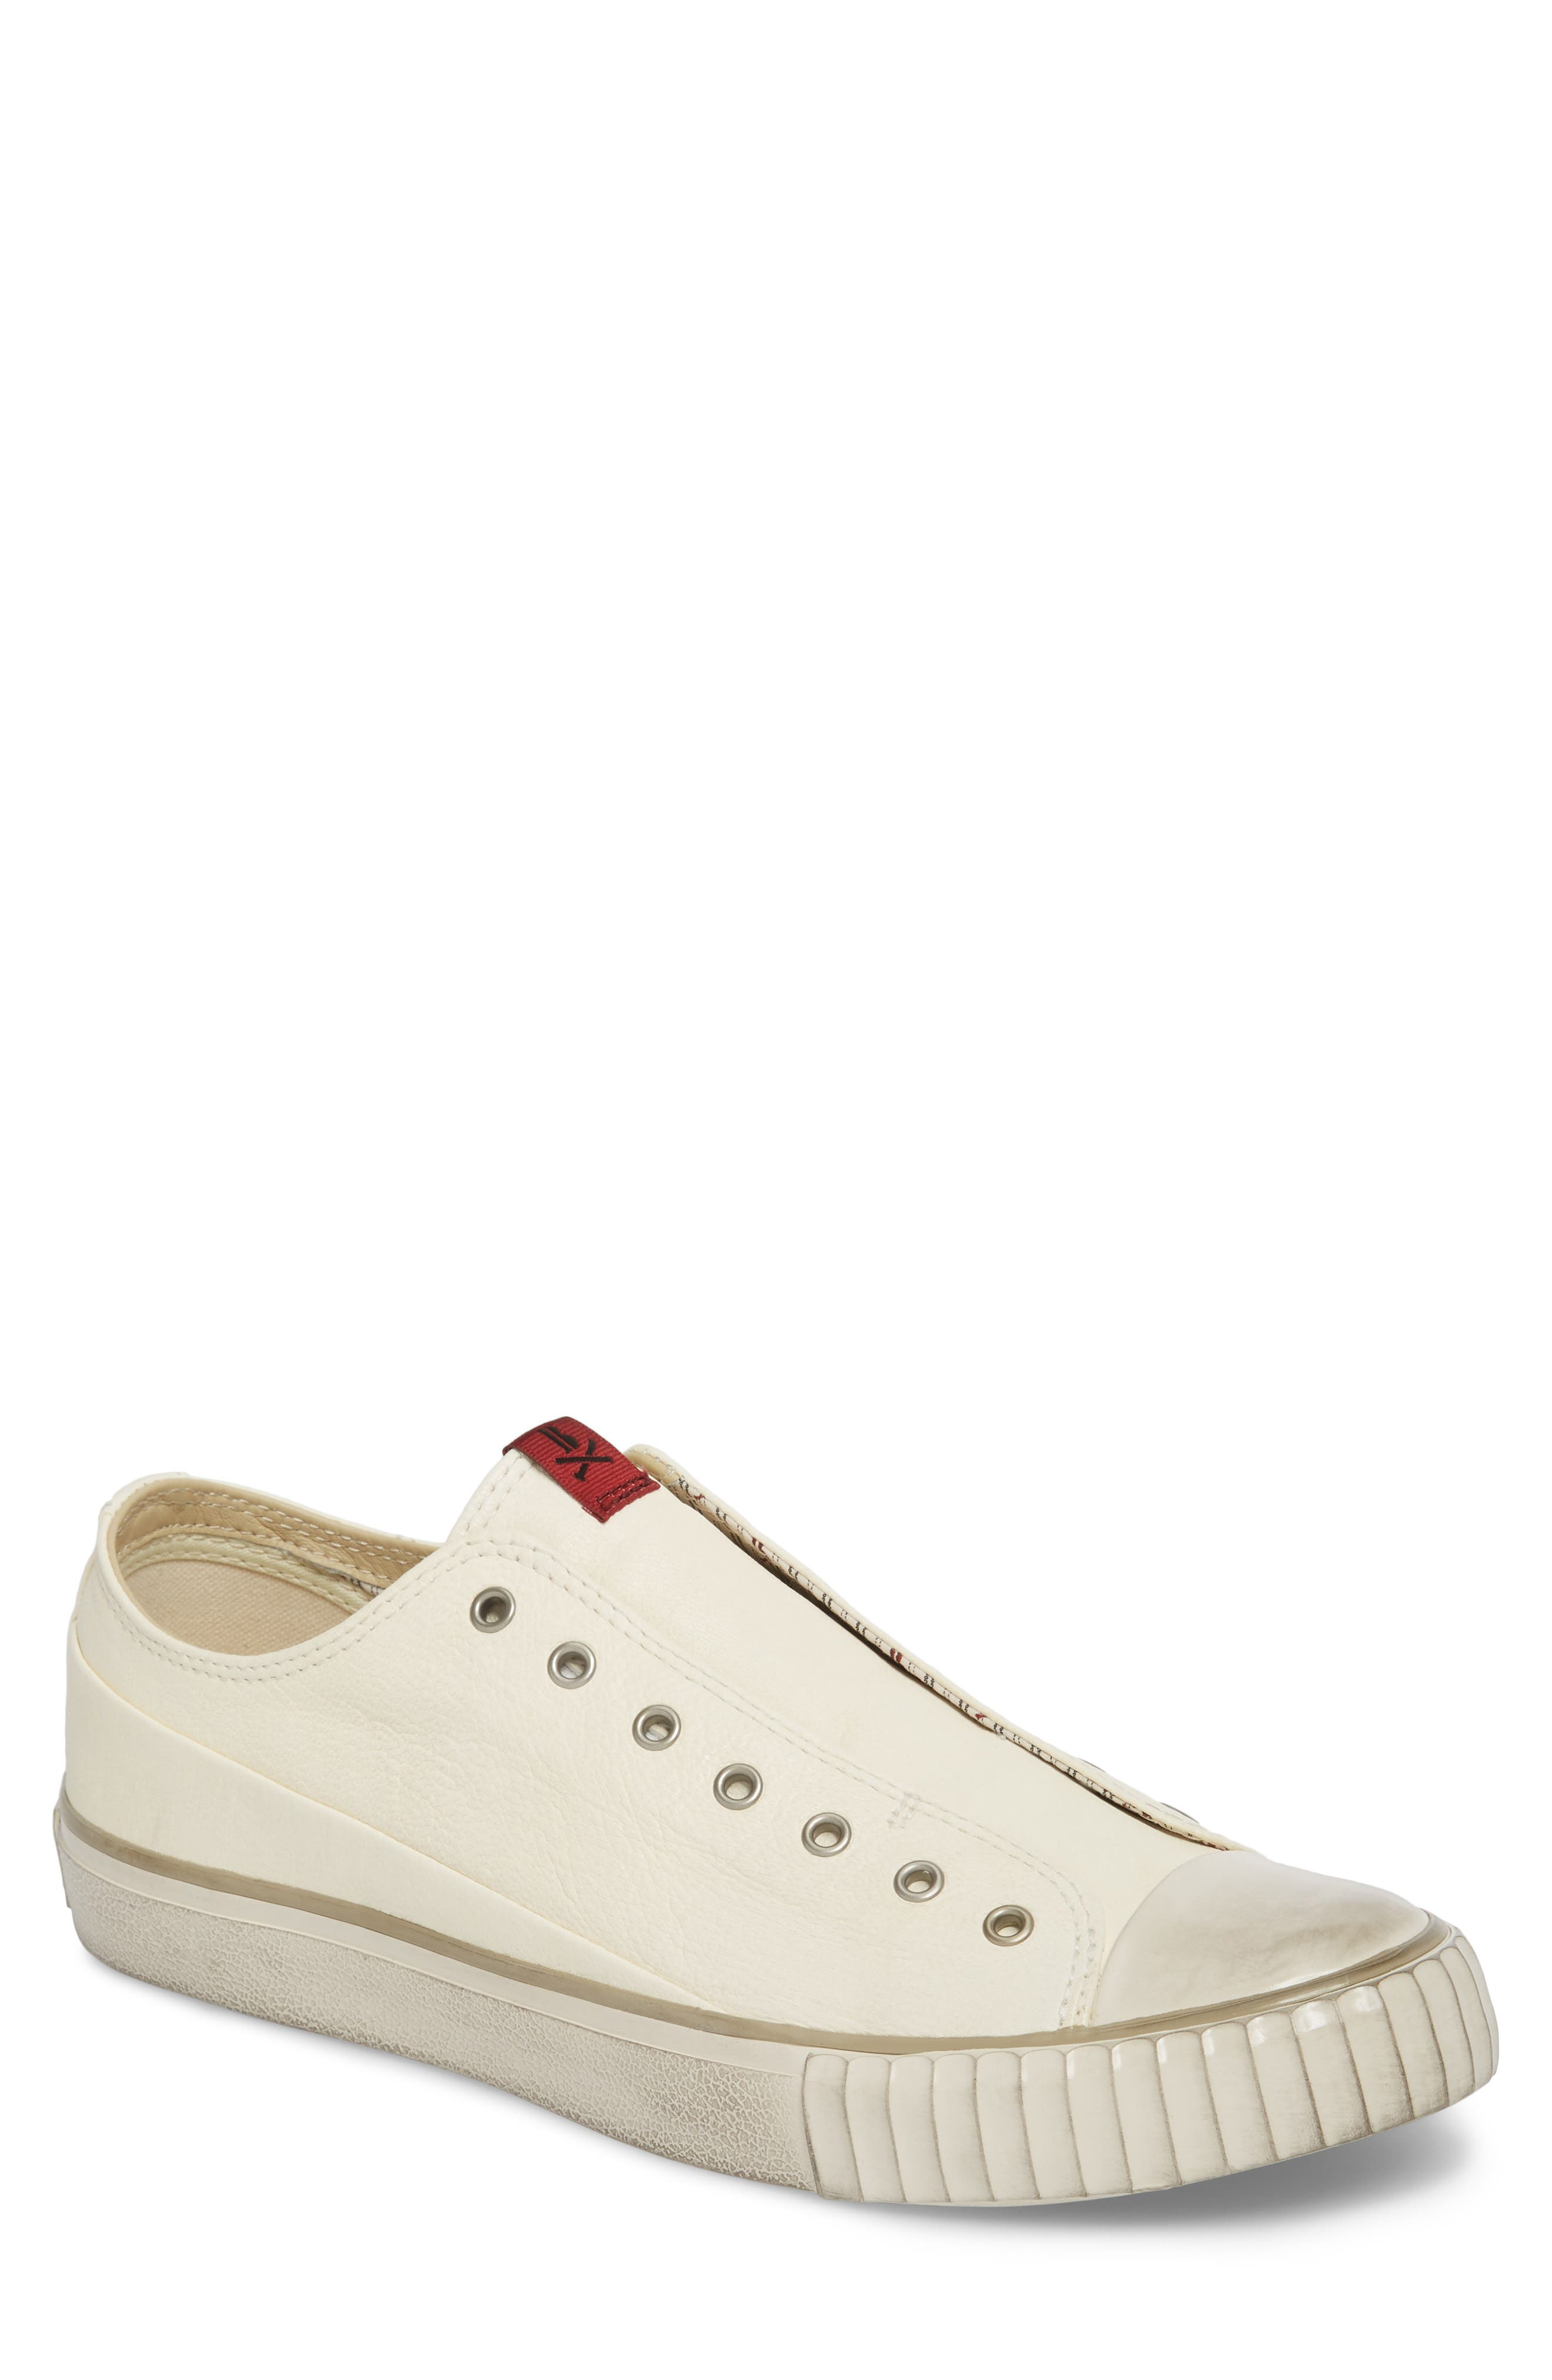 Laceless Low Top Sneaker,                             Main thumbnail 1, color,                             WHITE LEATHER